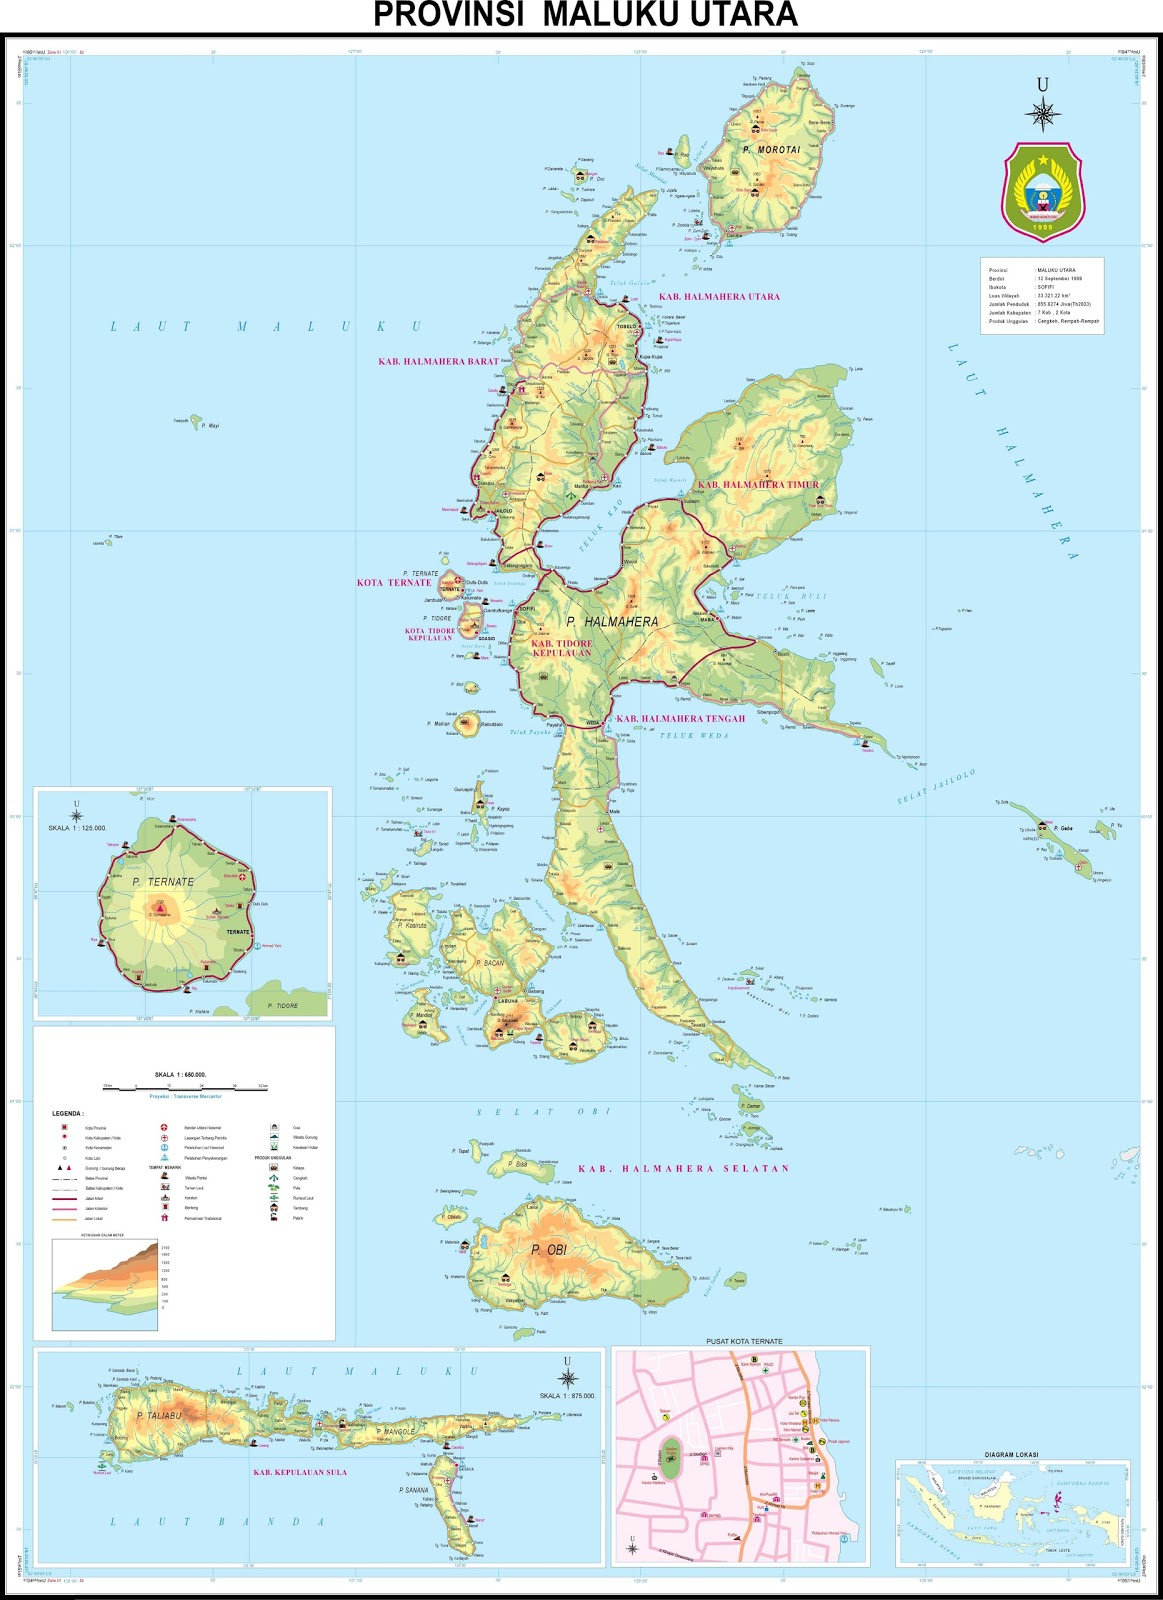 For high resolution please open file at North Maluku province map